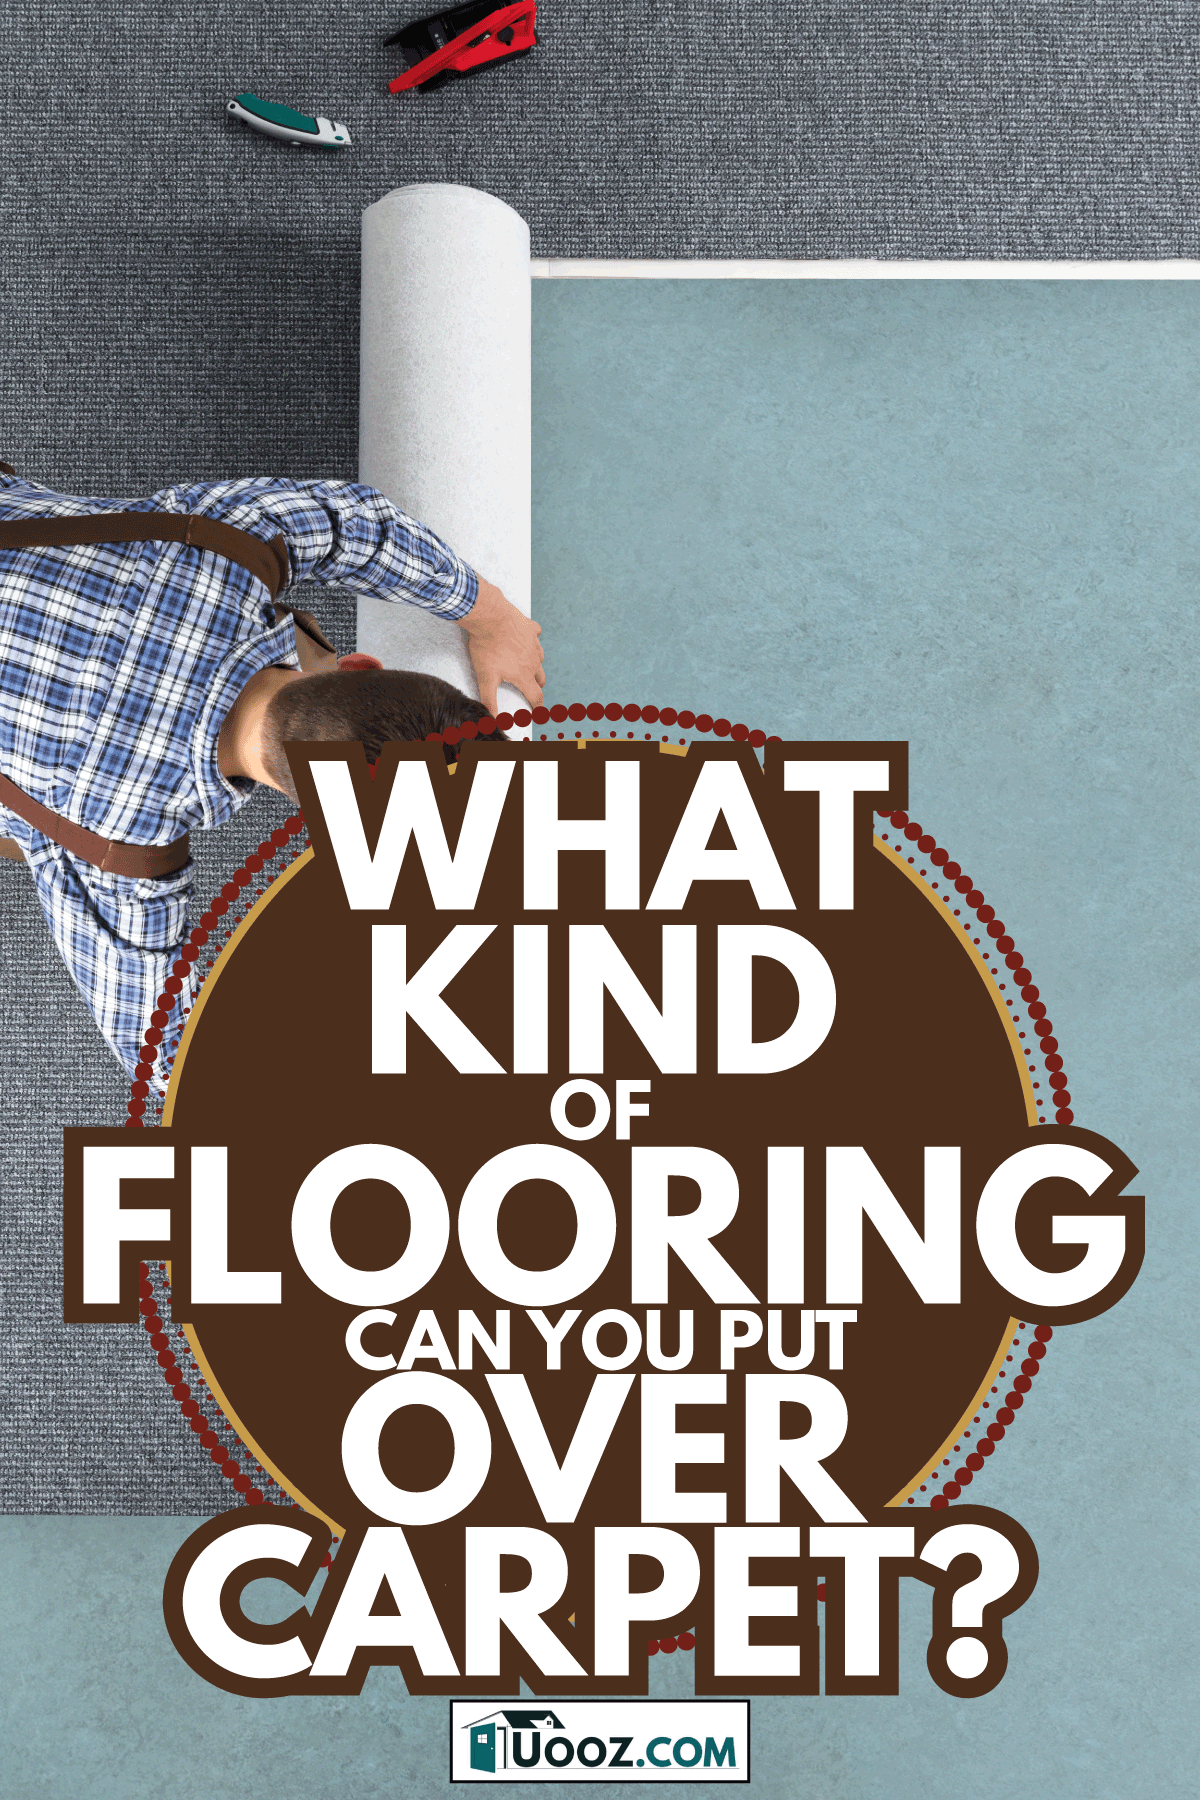 High Angle View Of Young Male Worker In Overalls Rolling Carpet On Floor At Home. What Kind Of Flooring Can You Put Over Carpet